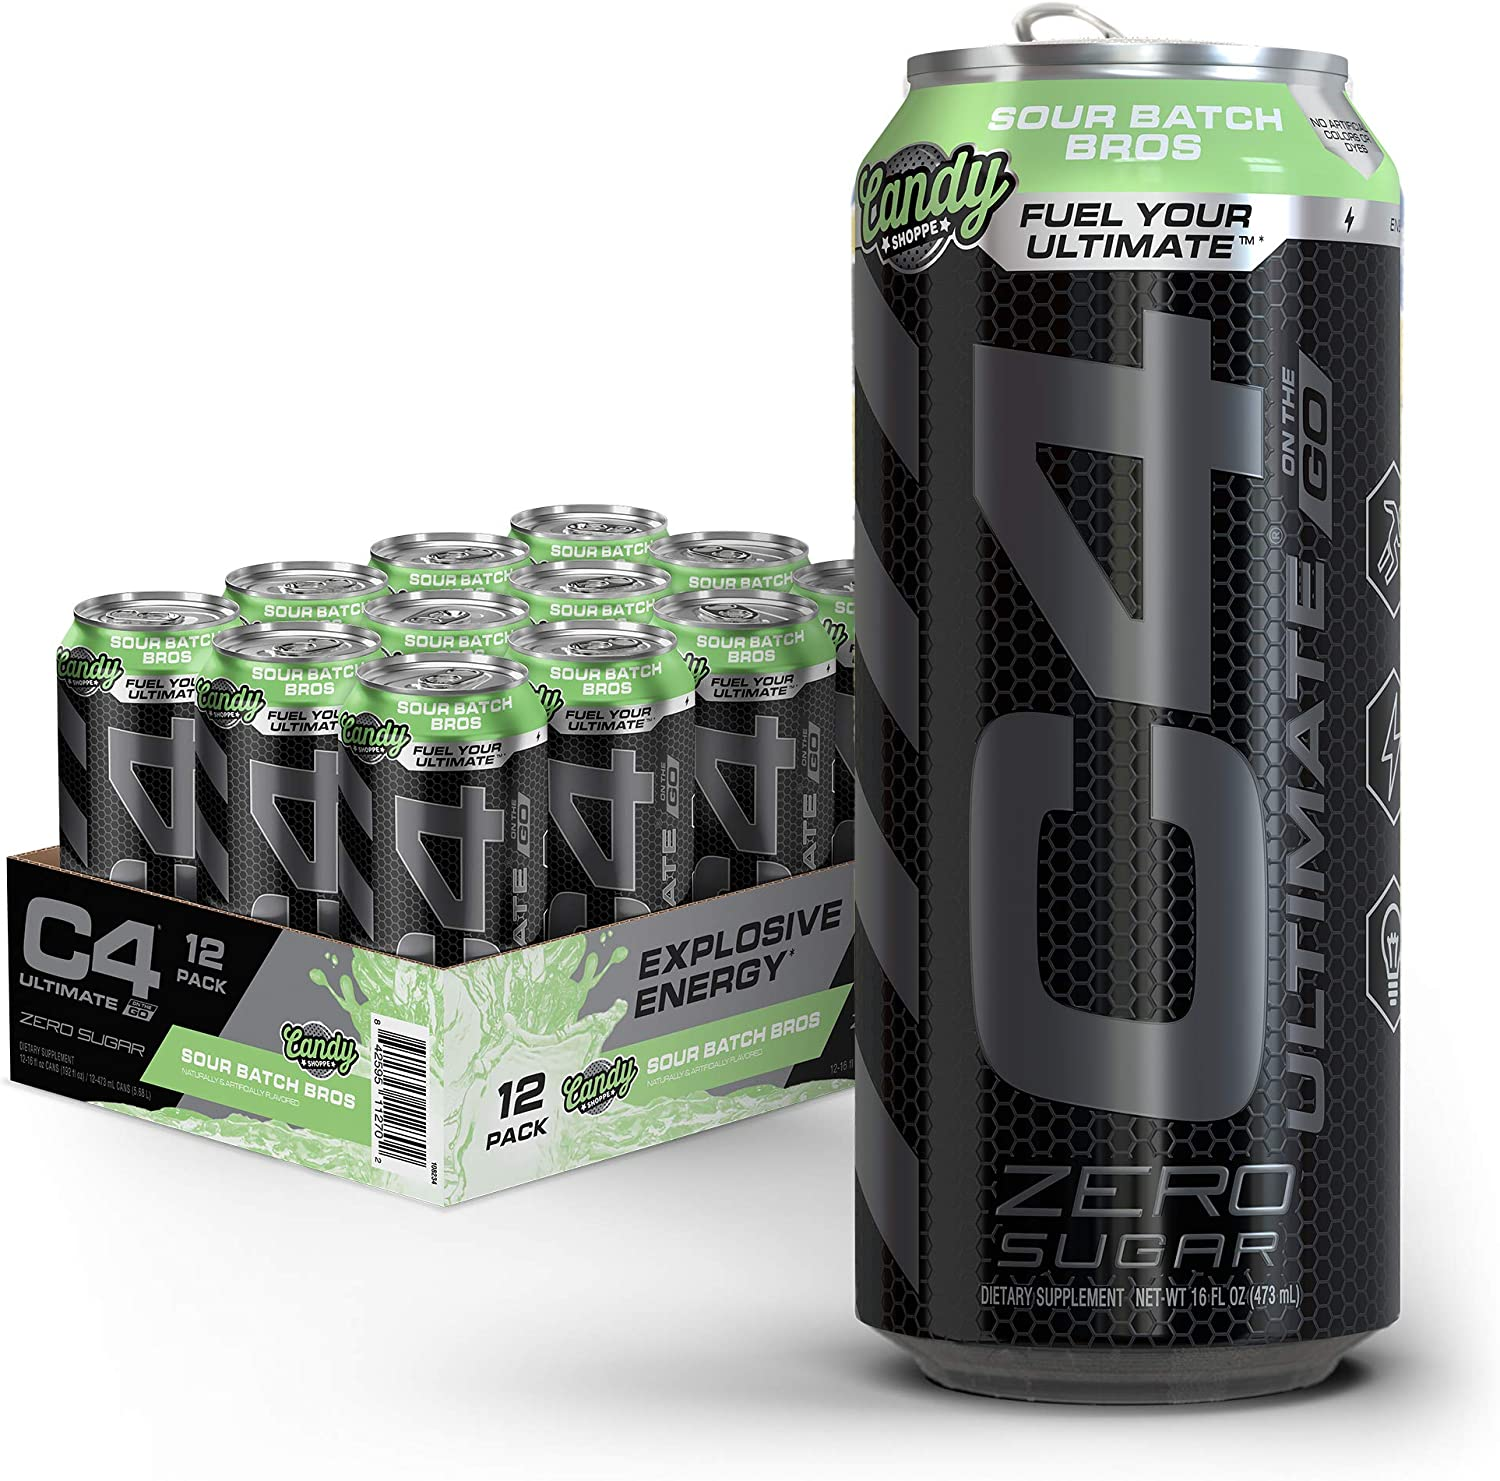 C4 Ultimate Sugar Free Energy Drink 16oz (Pack of 12) | Sour Batch Bros | Pre Workout Performance Drink with No Artificial Colors or Dyes